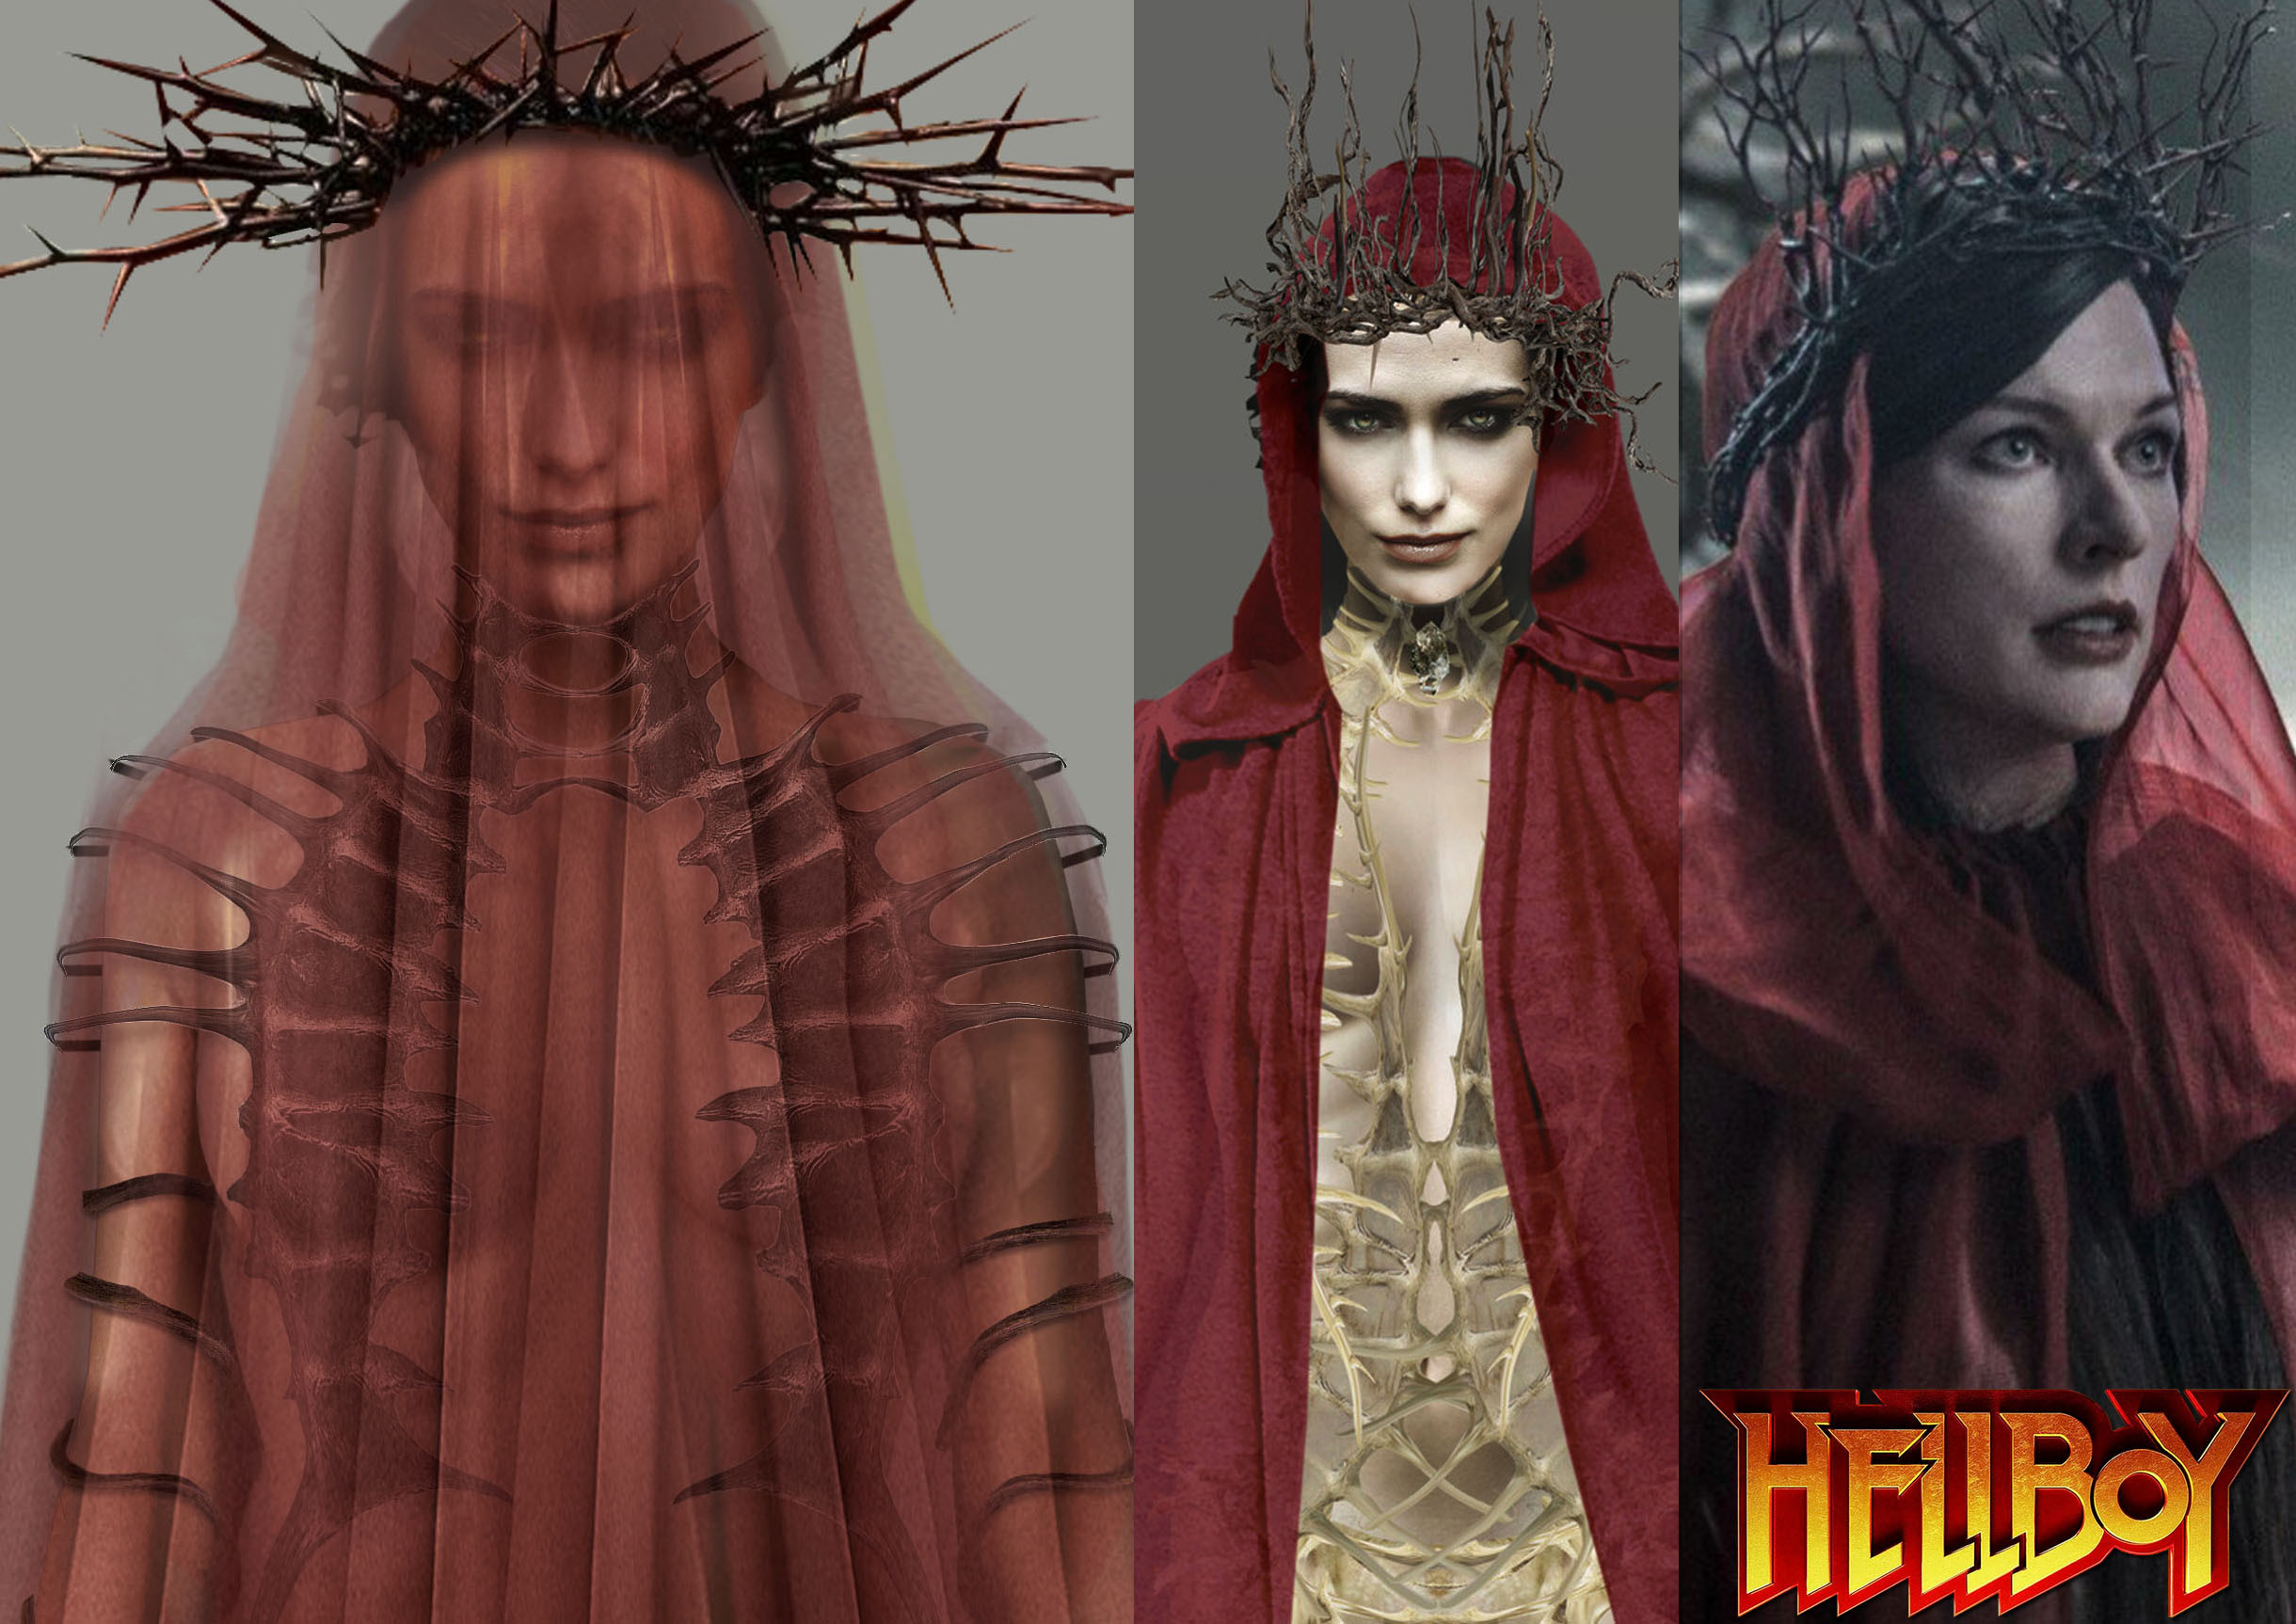 The Blood Queen from Hellboy